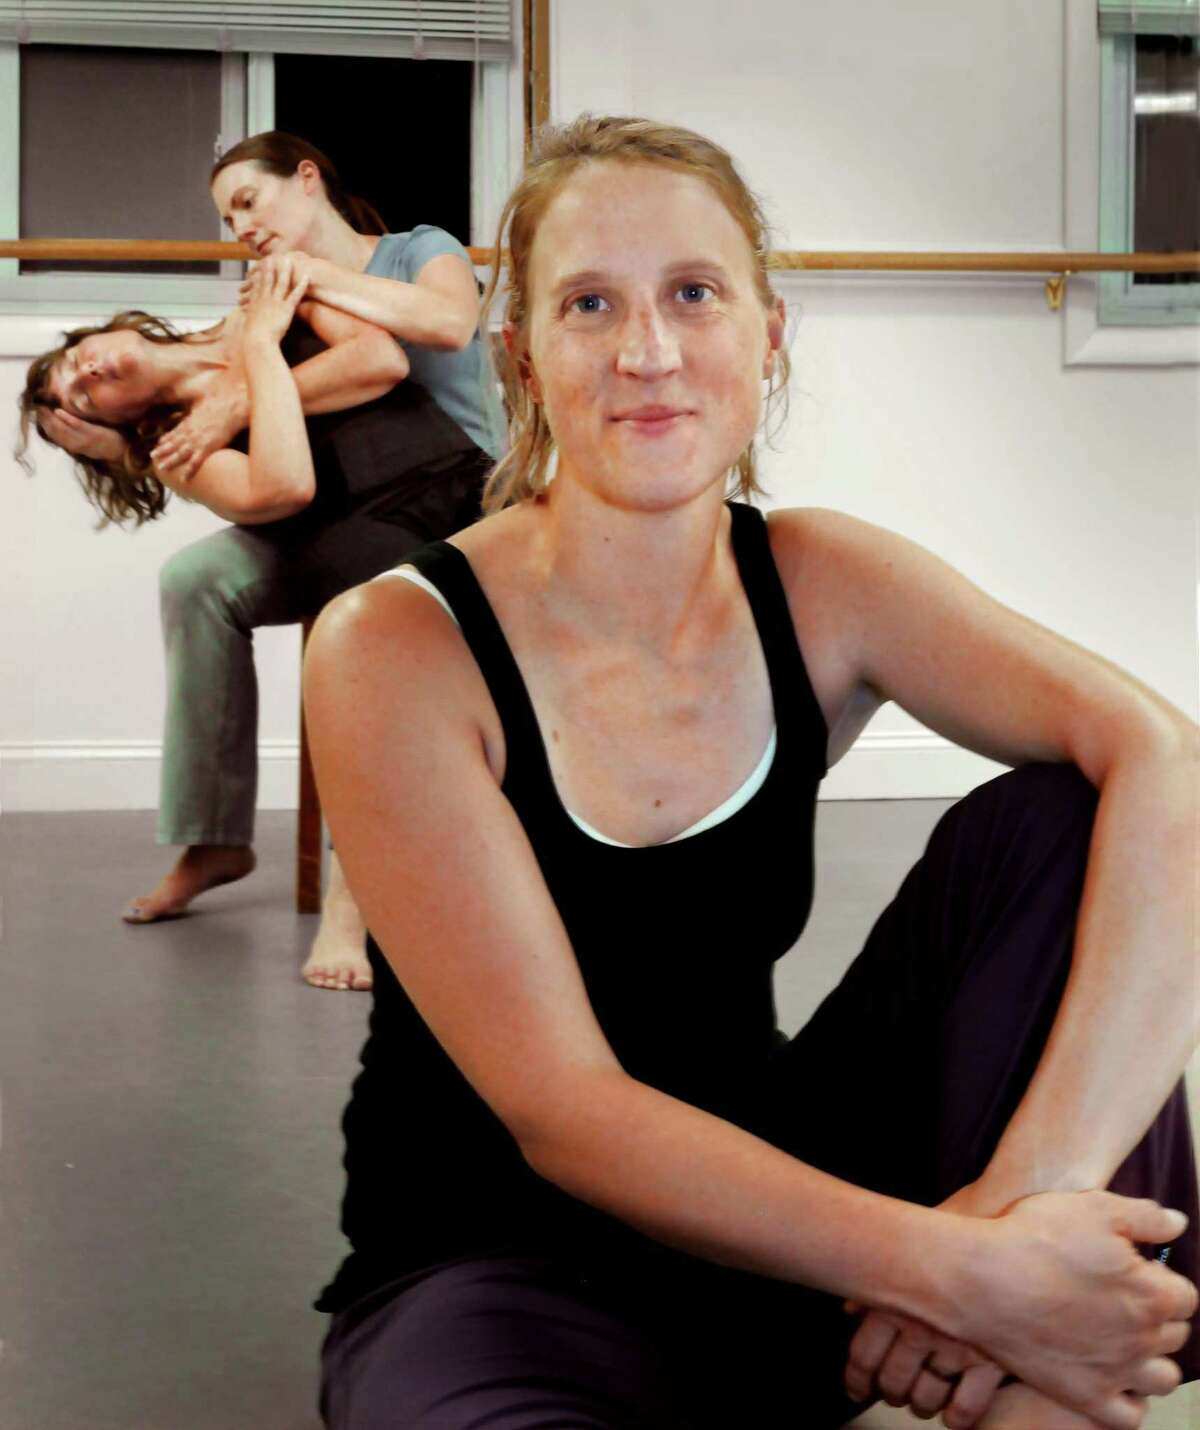 Choreographer Lacey Byrne performed at the Katherine Hepburn Cultural Center in Old Saybrook two years ago.